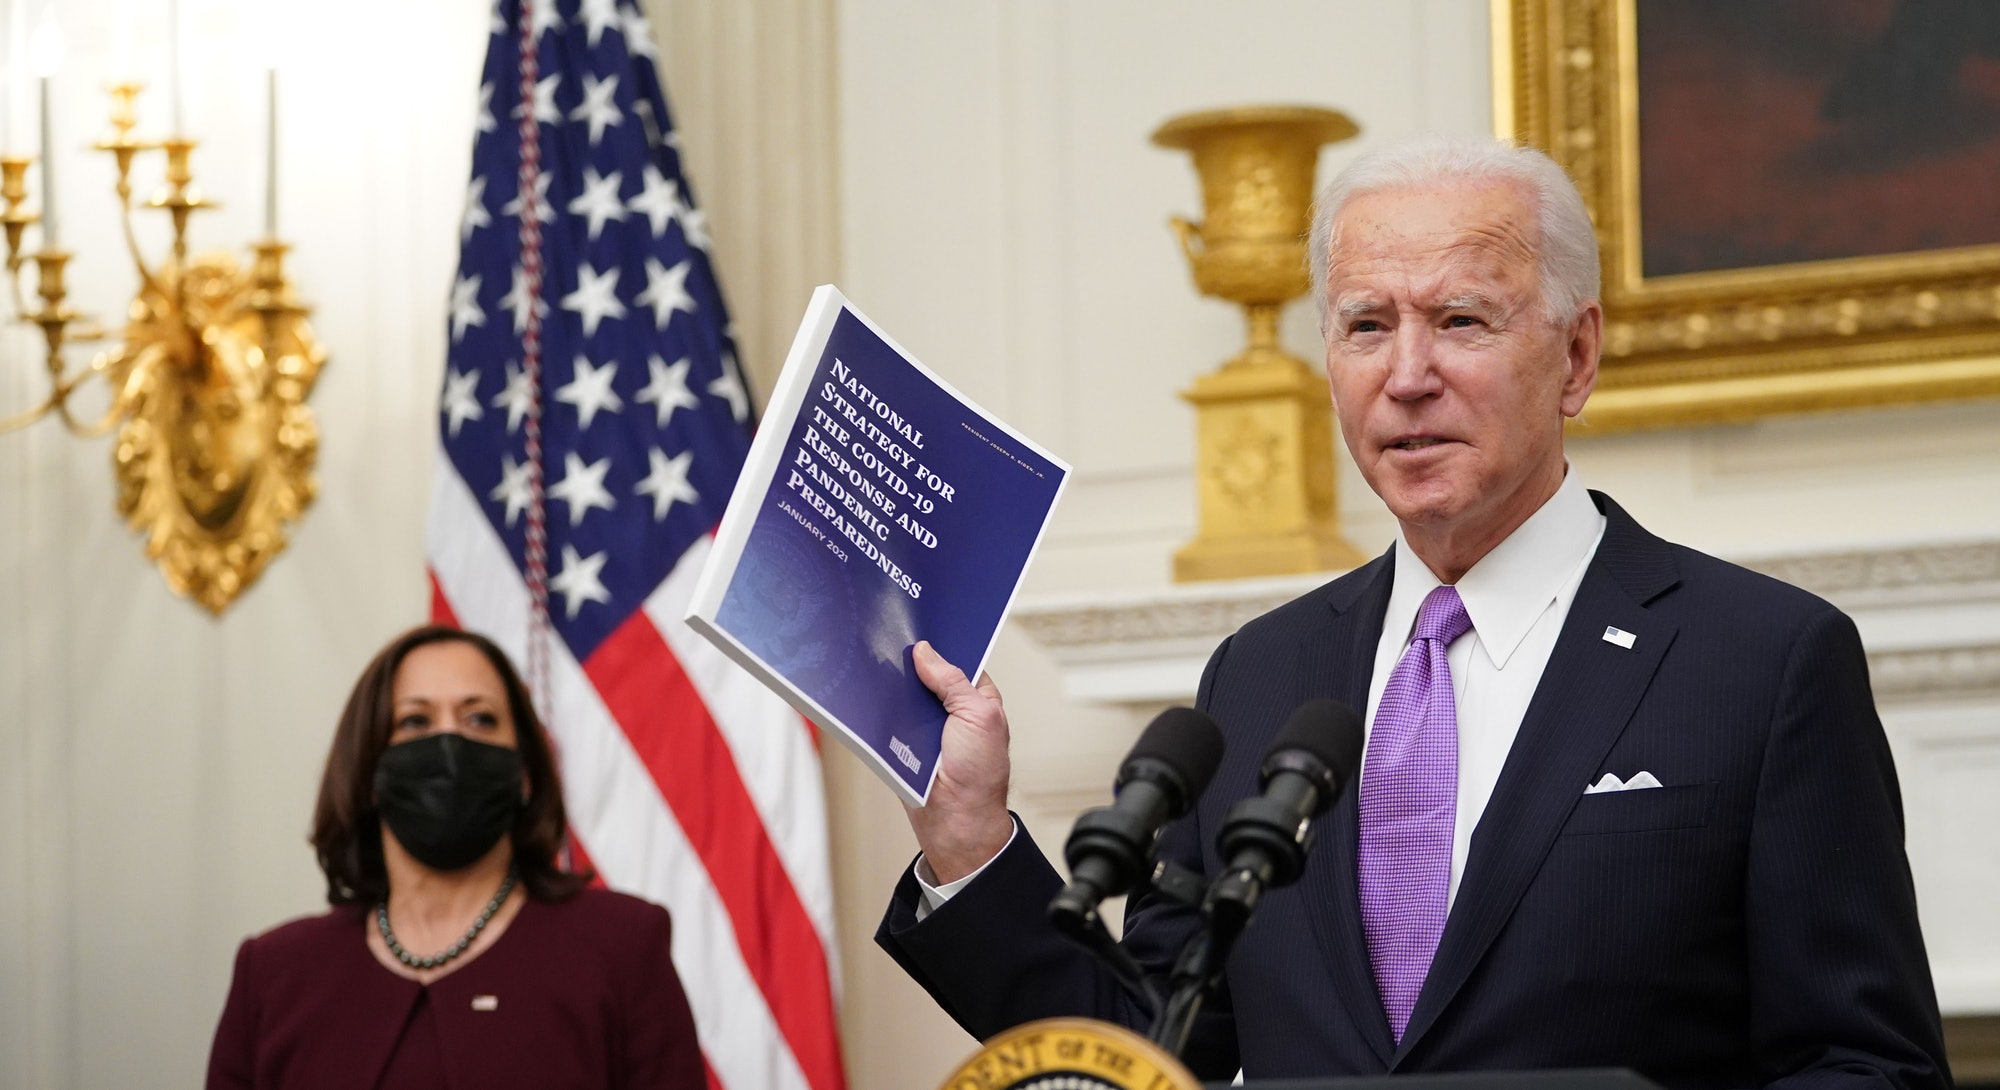 President Biden speaks while wearing a light purple tie. The Biden administration is creating new COVID safety standards for the country.